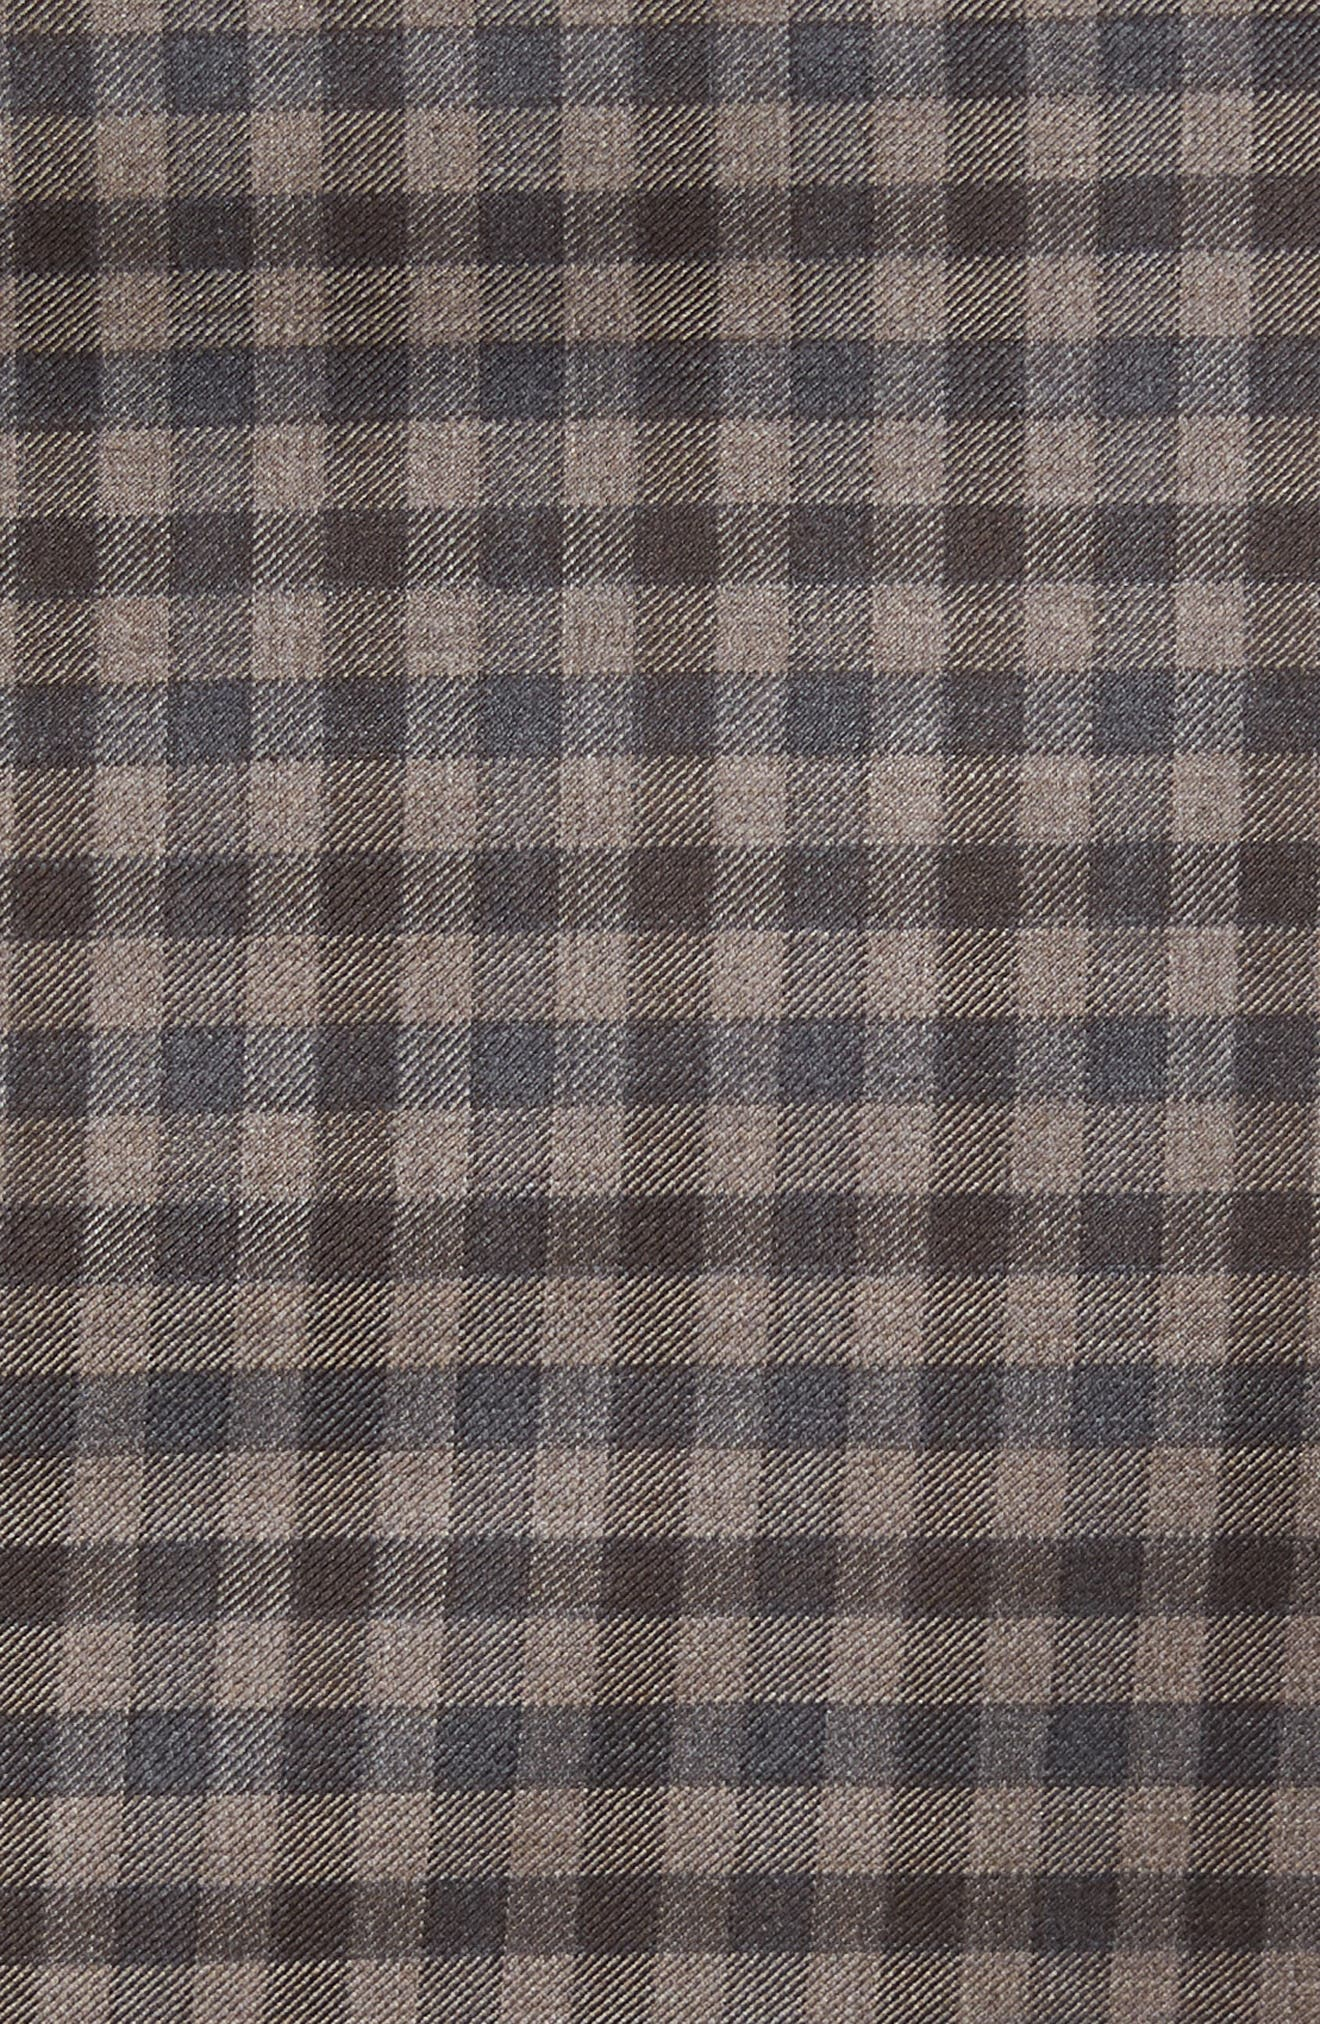 Classic Fit Check Wool Sport Coat,                             Alternate thumbnail 6, color,                             210